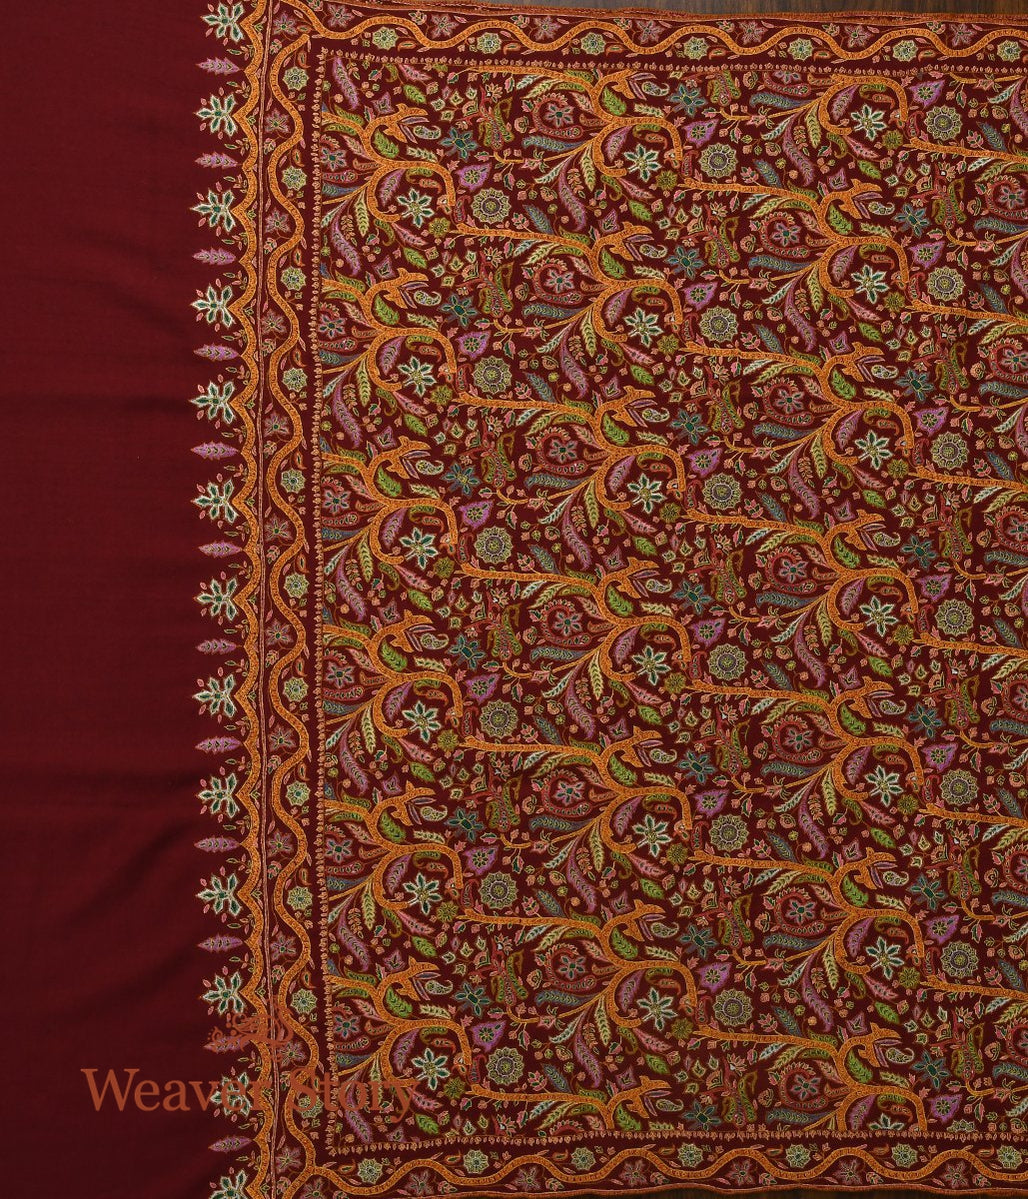 Maroon All Over Reshmi Jamawar Shawl in Fine Handwoven Pashmina